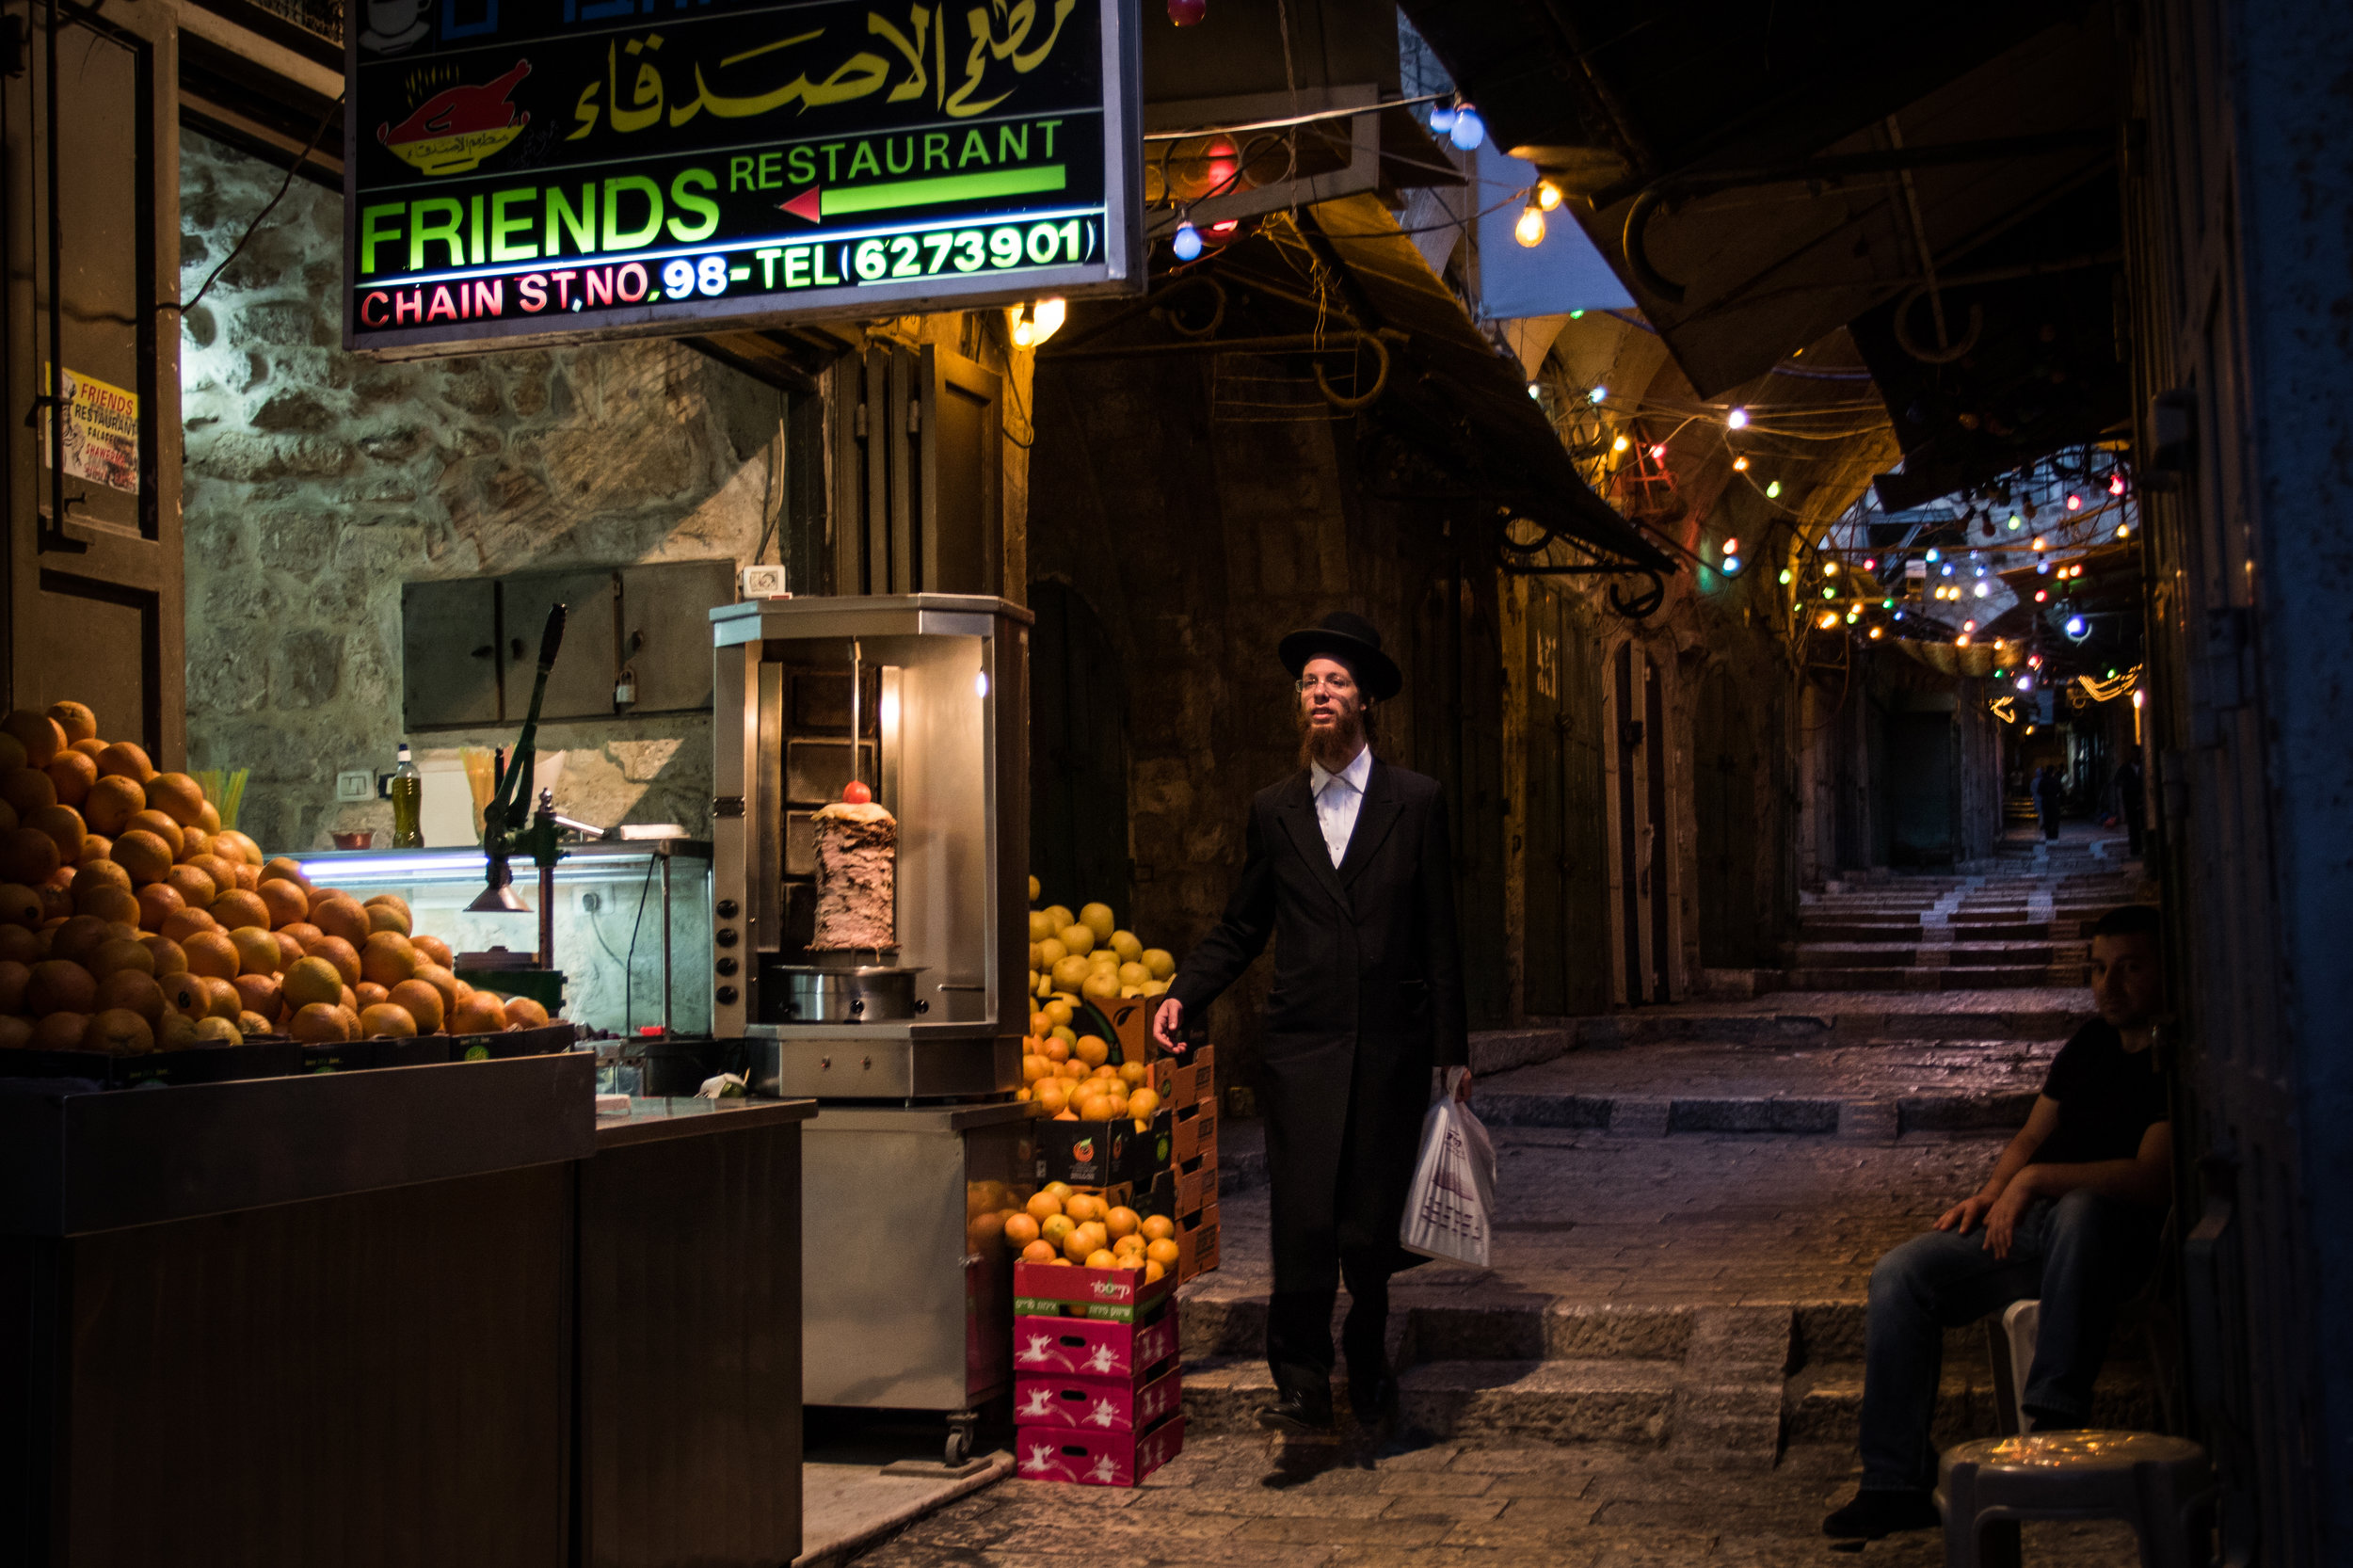 An Orthodox Jewish man makes his way through the empty streets of the Old City of Jerusalem towards the Western Wall under lights hung to celebrate the Muslim holiday of Ramadan, June 13, 2016.